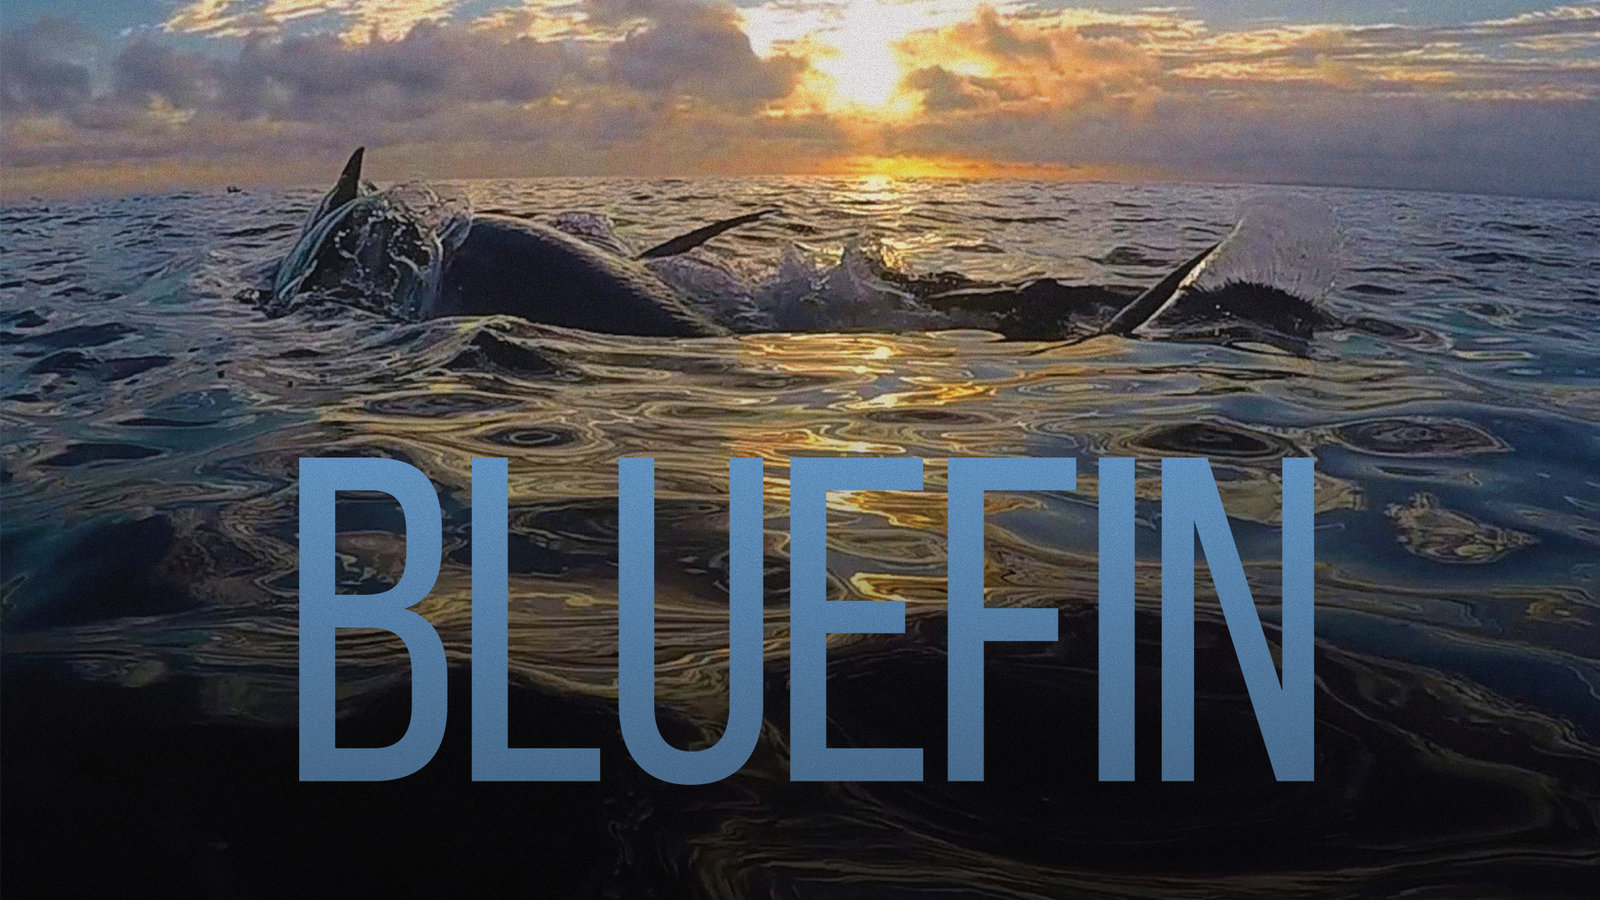 Bluefin - Investigating a Fish Phenomenon